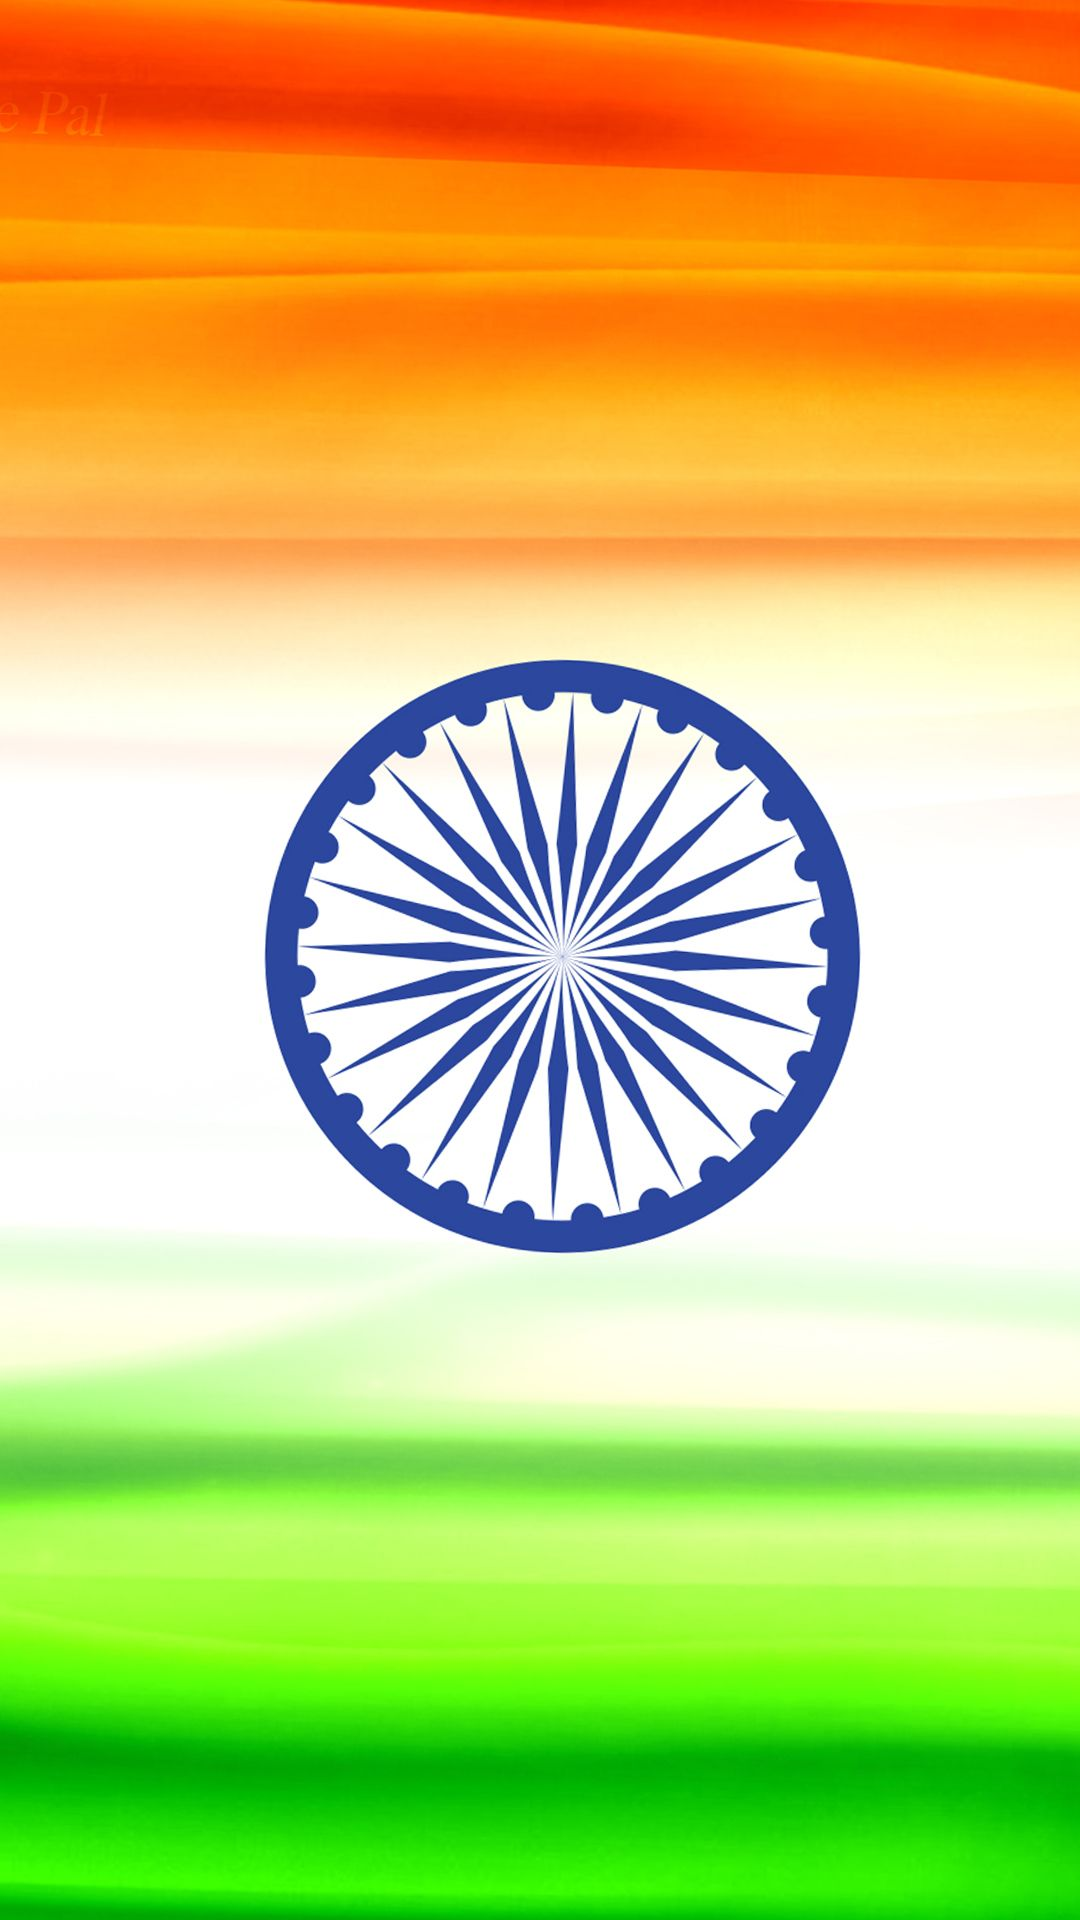 india flag for mobile phone wallpaper 10 of 17 - proud to be an